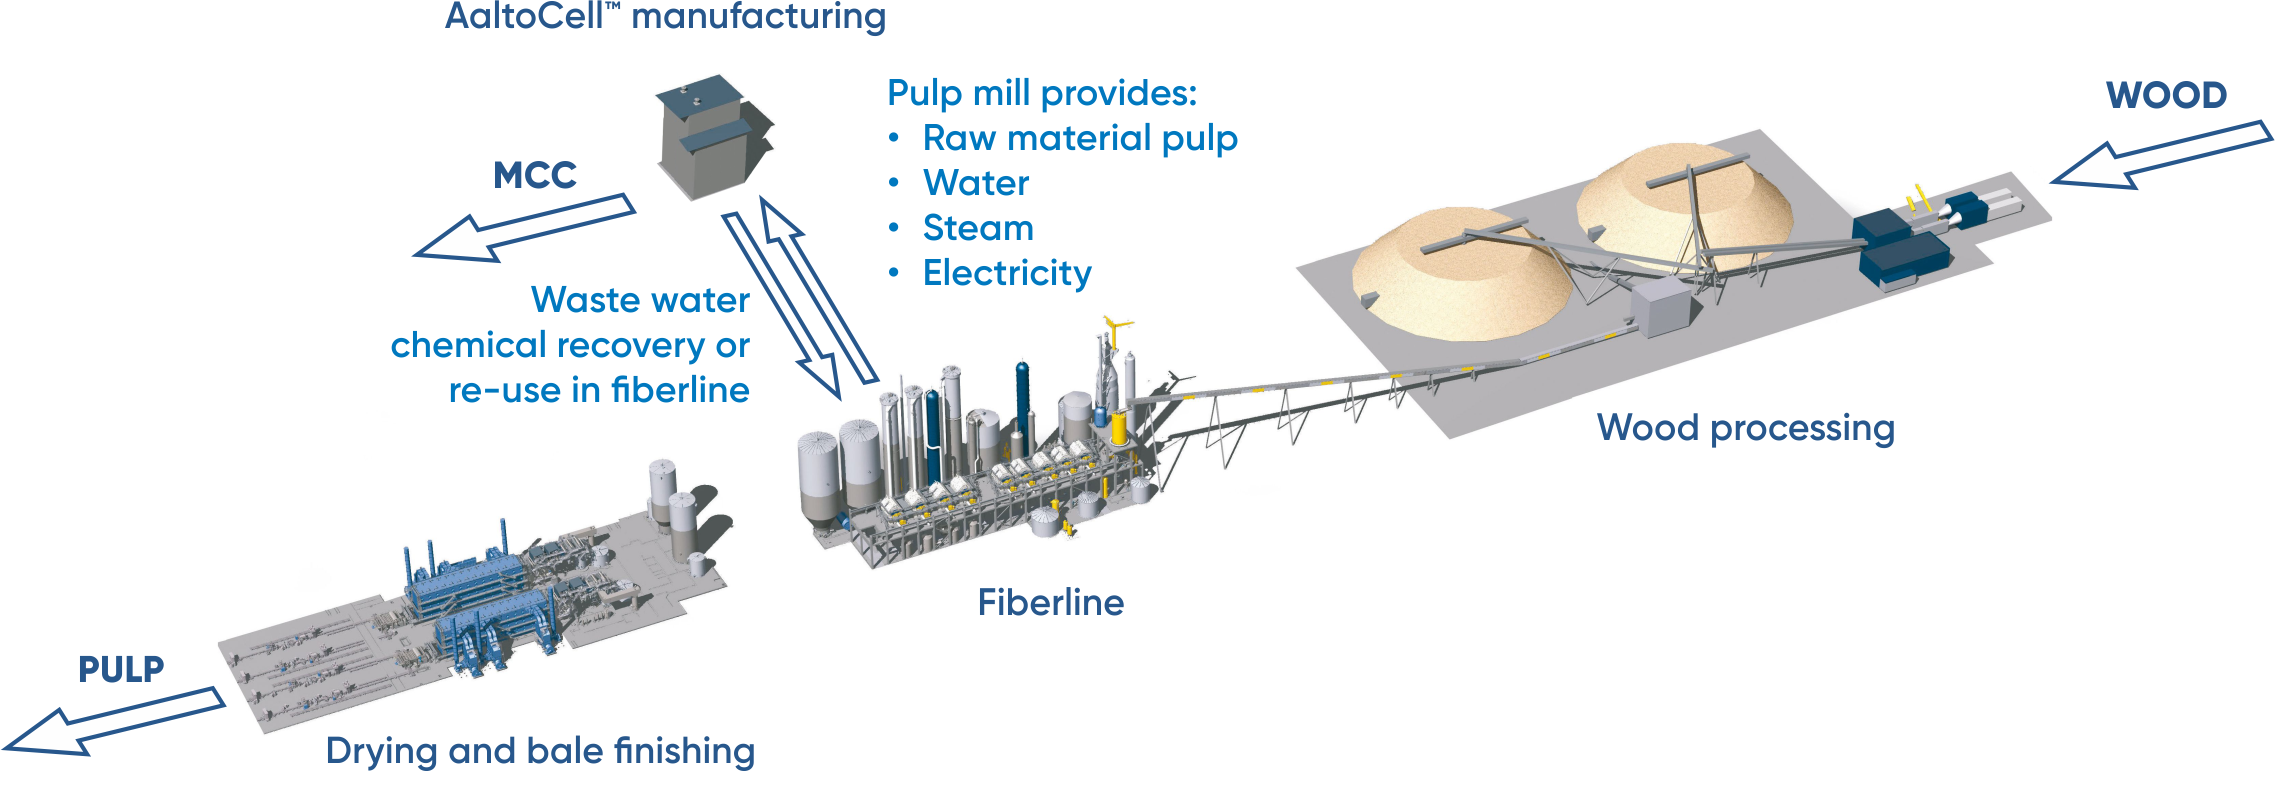 AaltoCell™ pulp mill integration